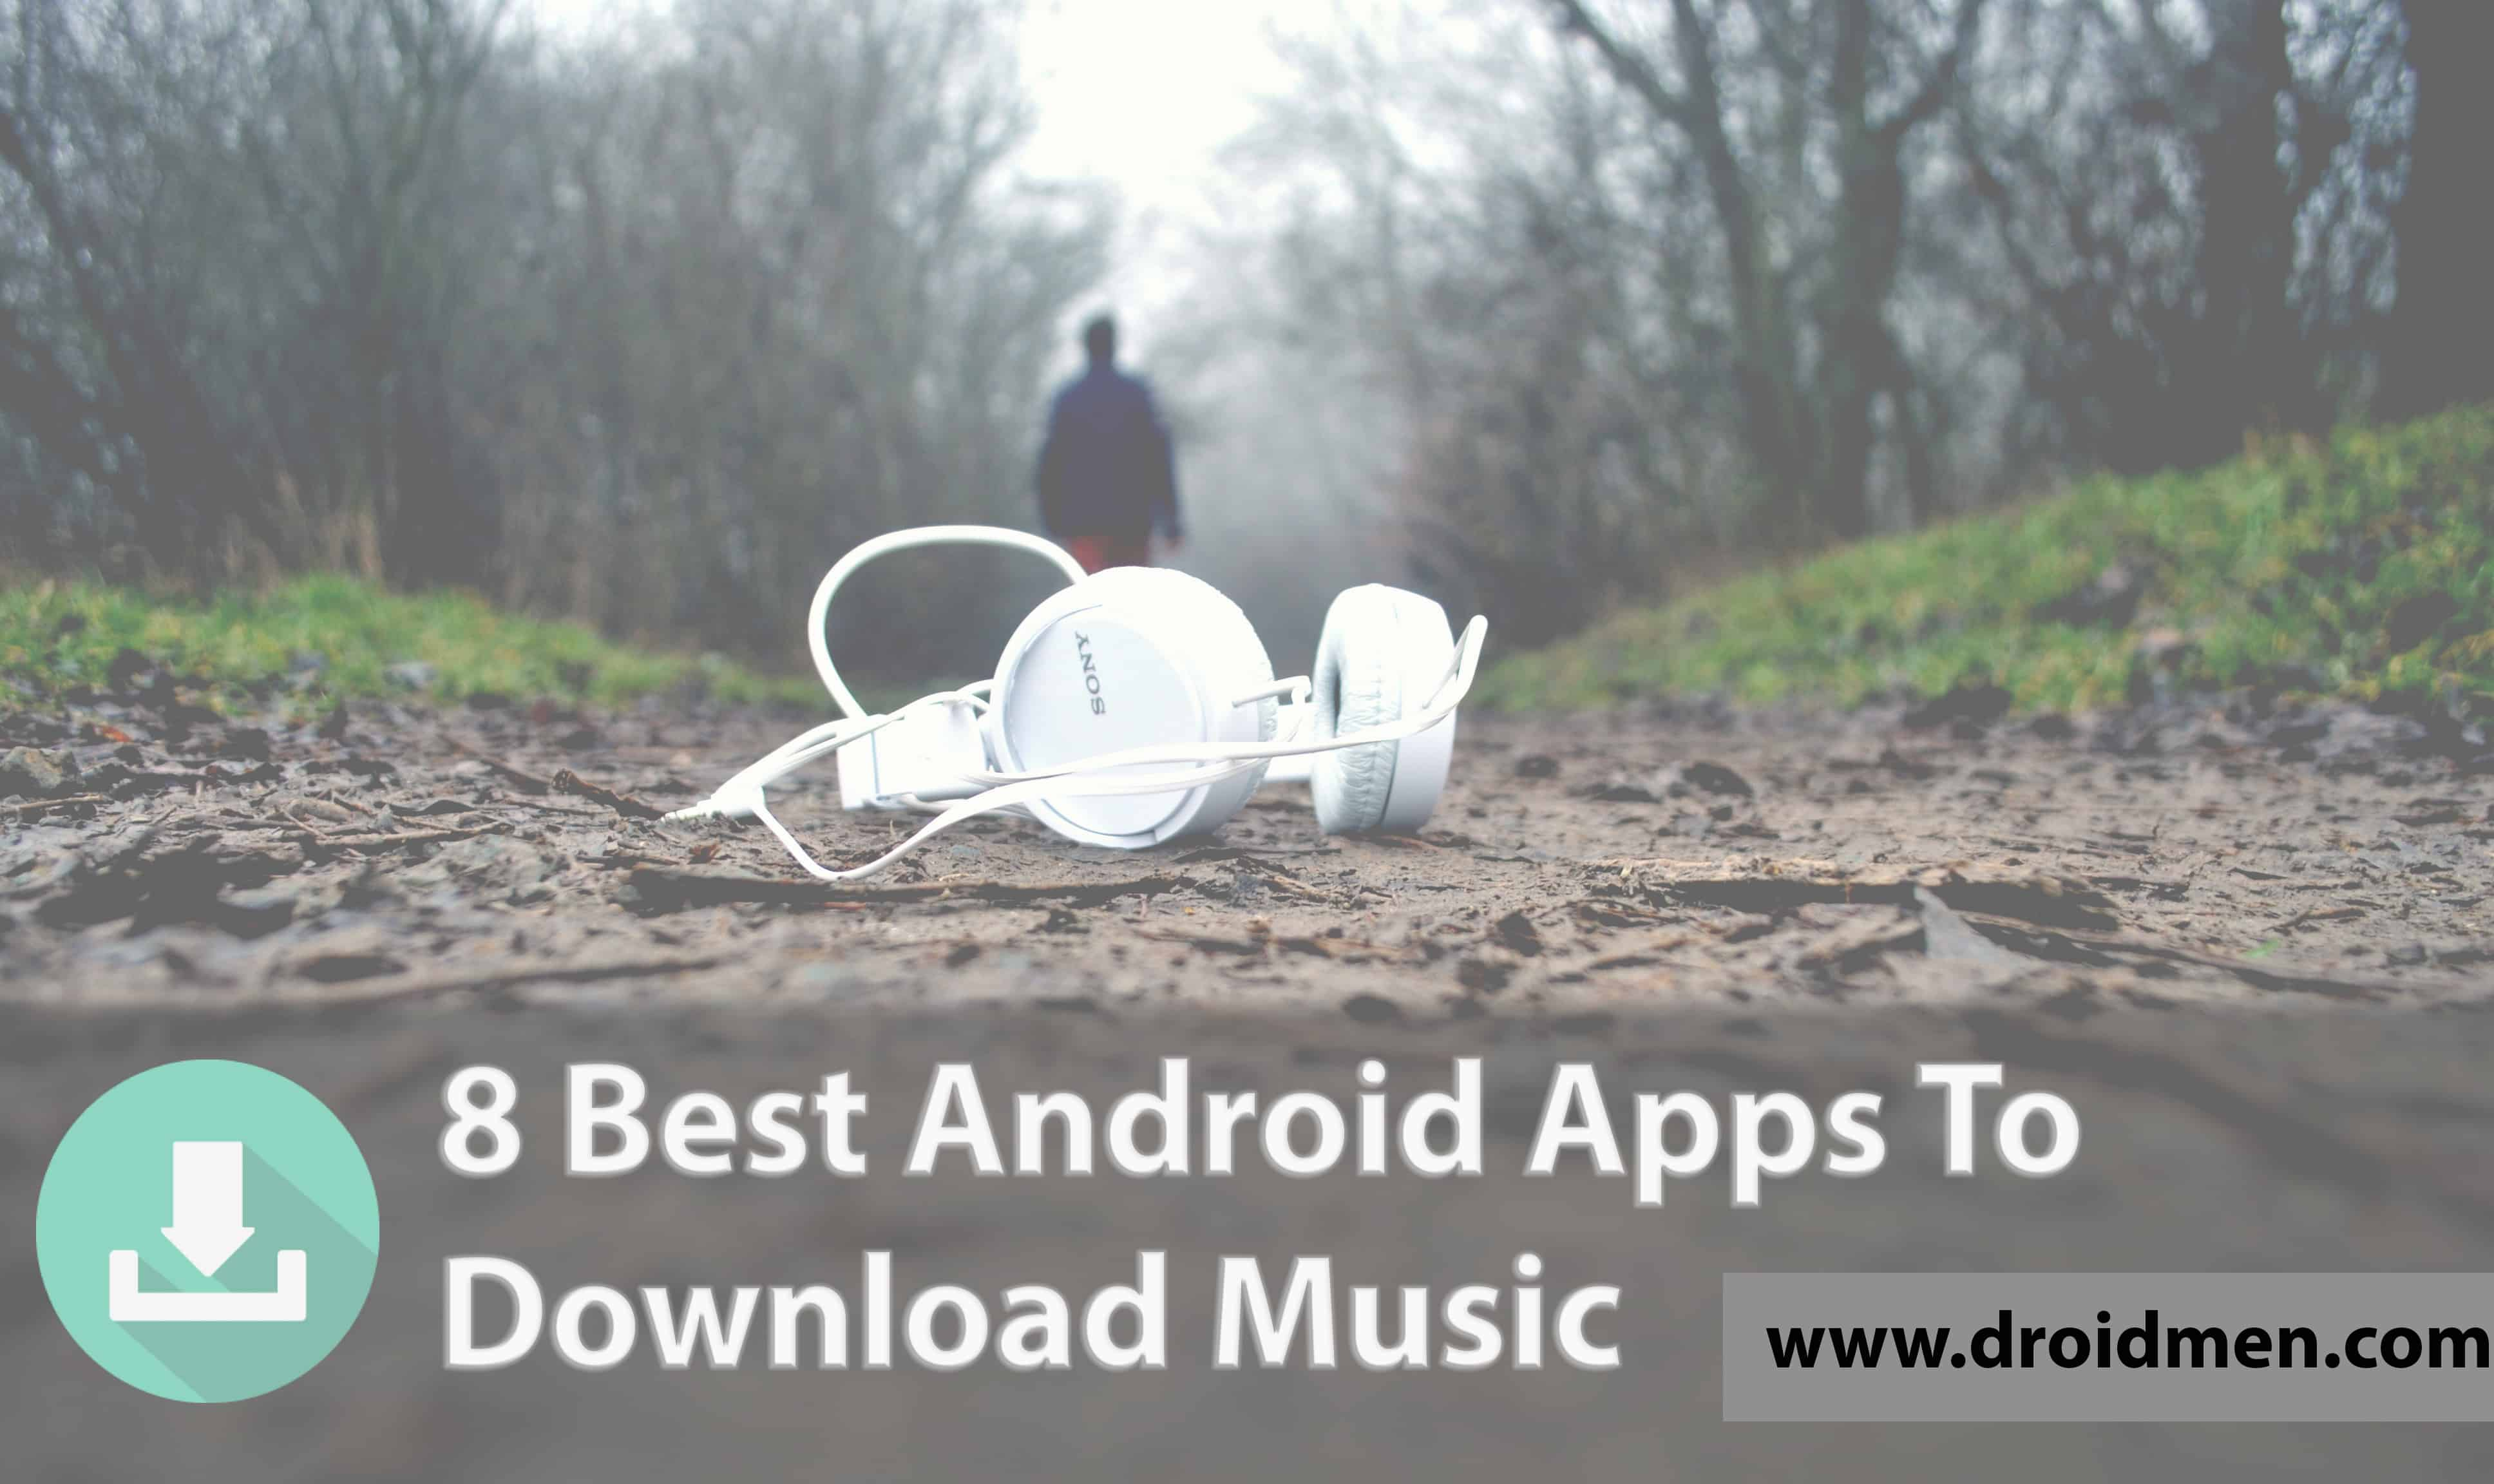 Phone Downloading Music To Android Phone 8 best android apps to download music on downloading has always